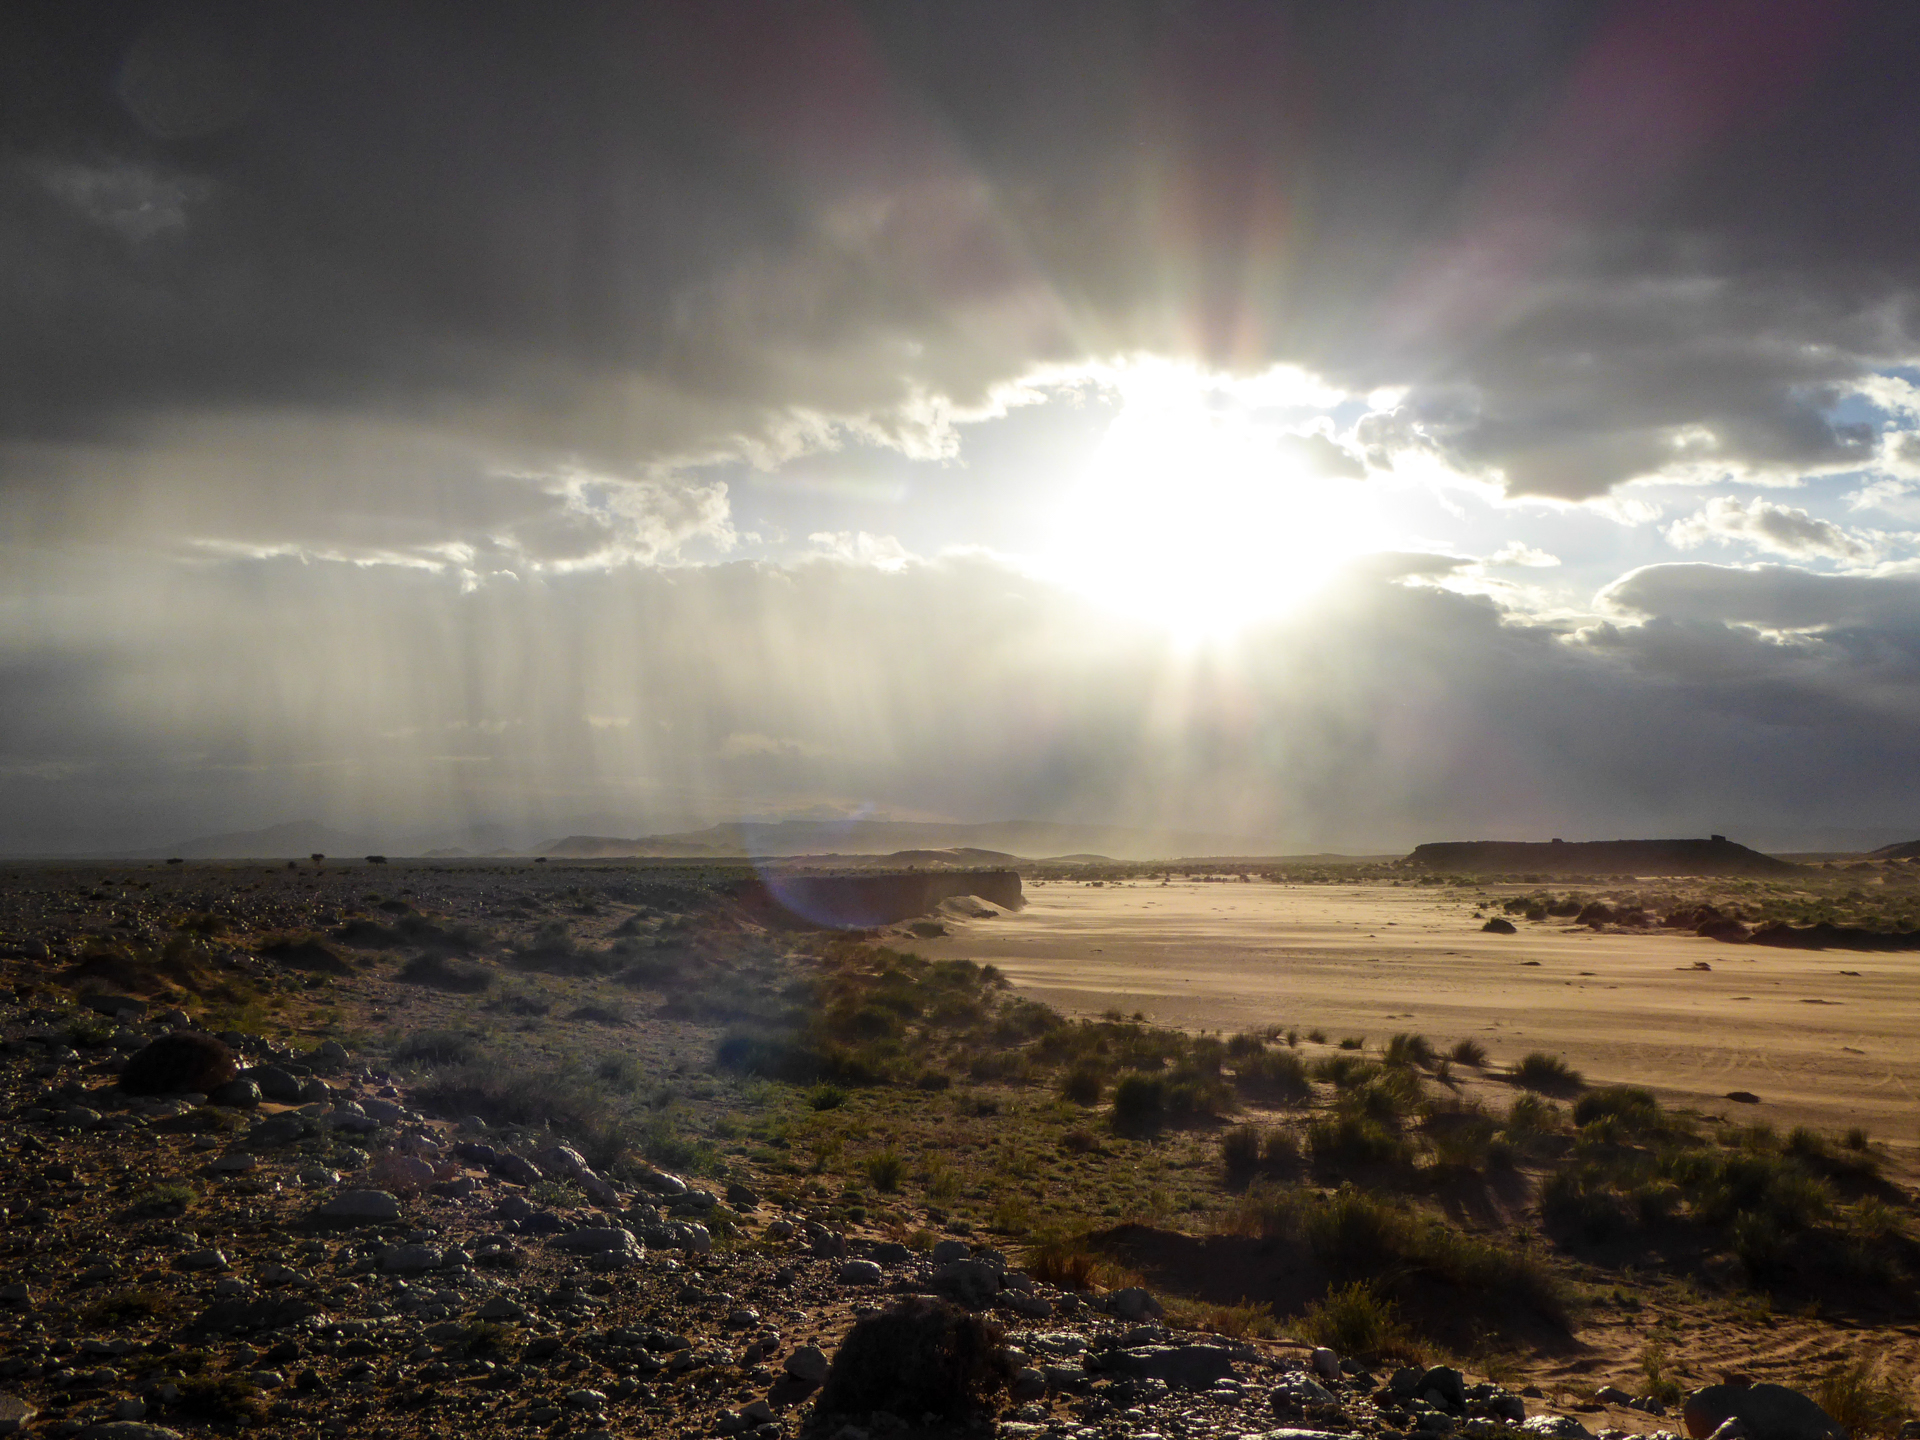 Sunset in rainstorm in the Sahara